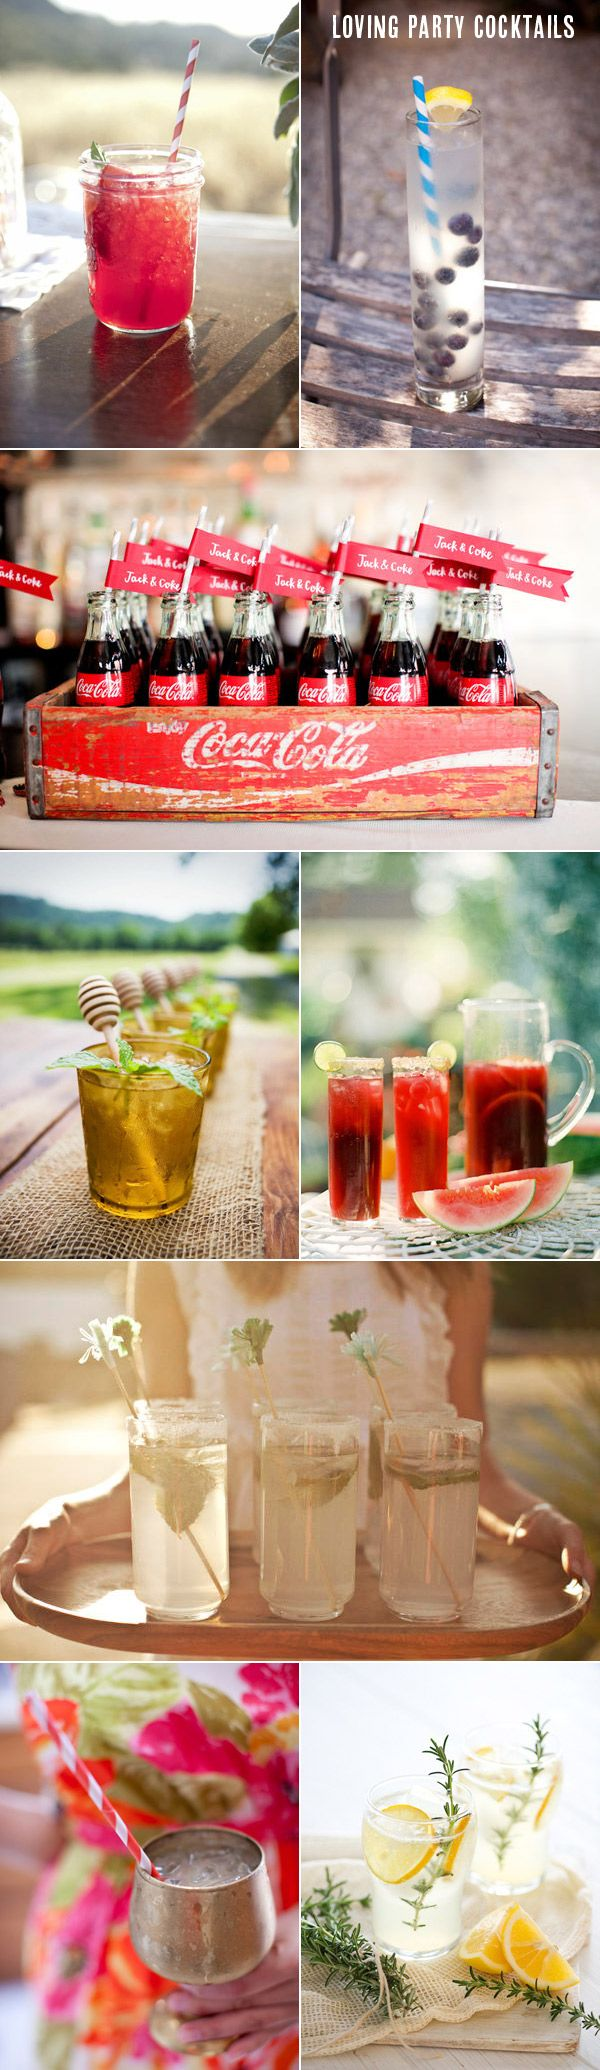 party cocktail ideas